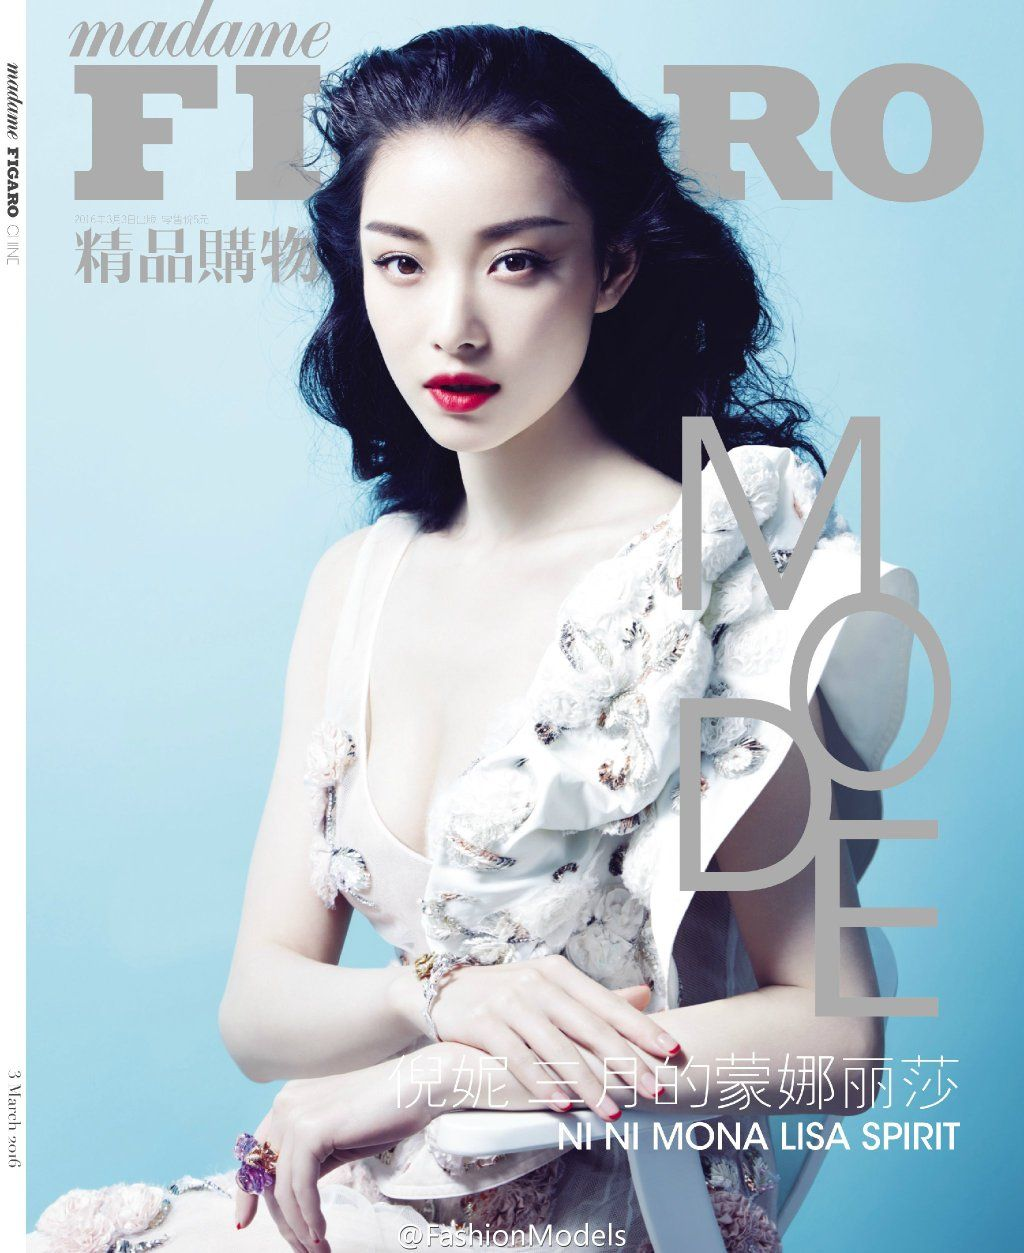 Taiwanese Beauty Queens: Gorgeous NiNi #Madame Figaro